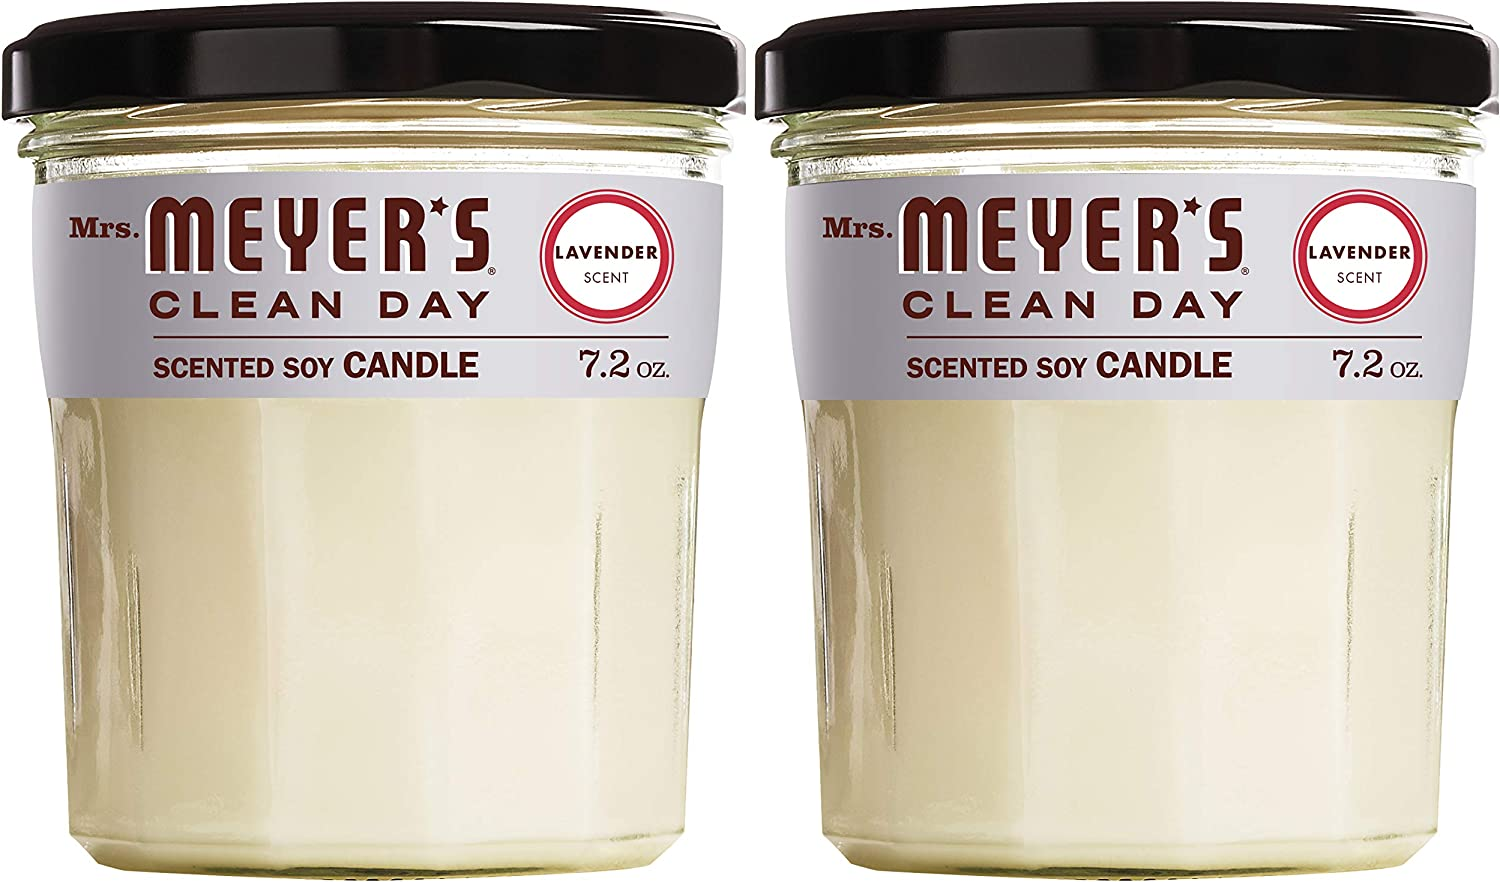 Mrs. Meyer's Clean Day Scented Soy Aromatherapy Candle, 35 Hour Burn Time, Made with Soy Wax, Lavender, 7.2 oz- Pack of 2: Health & Personal Care